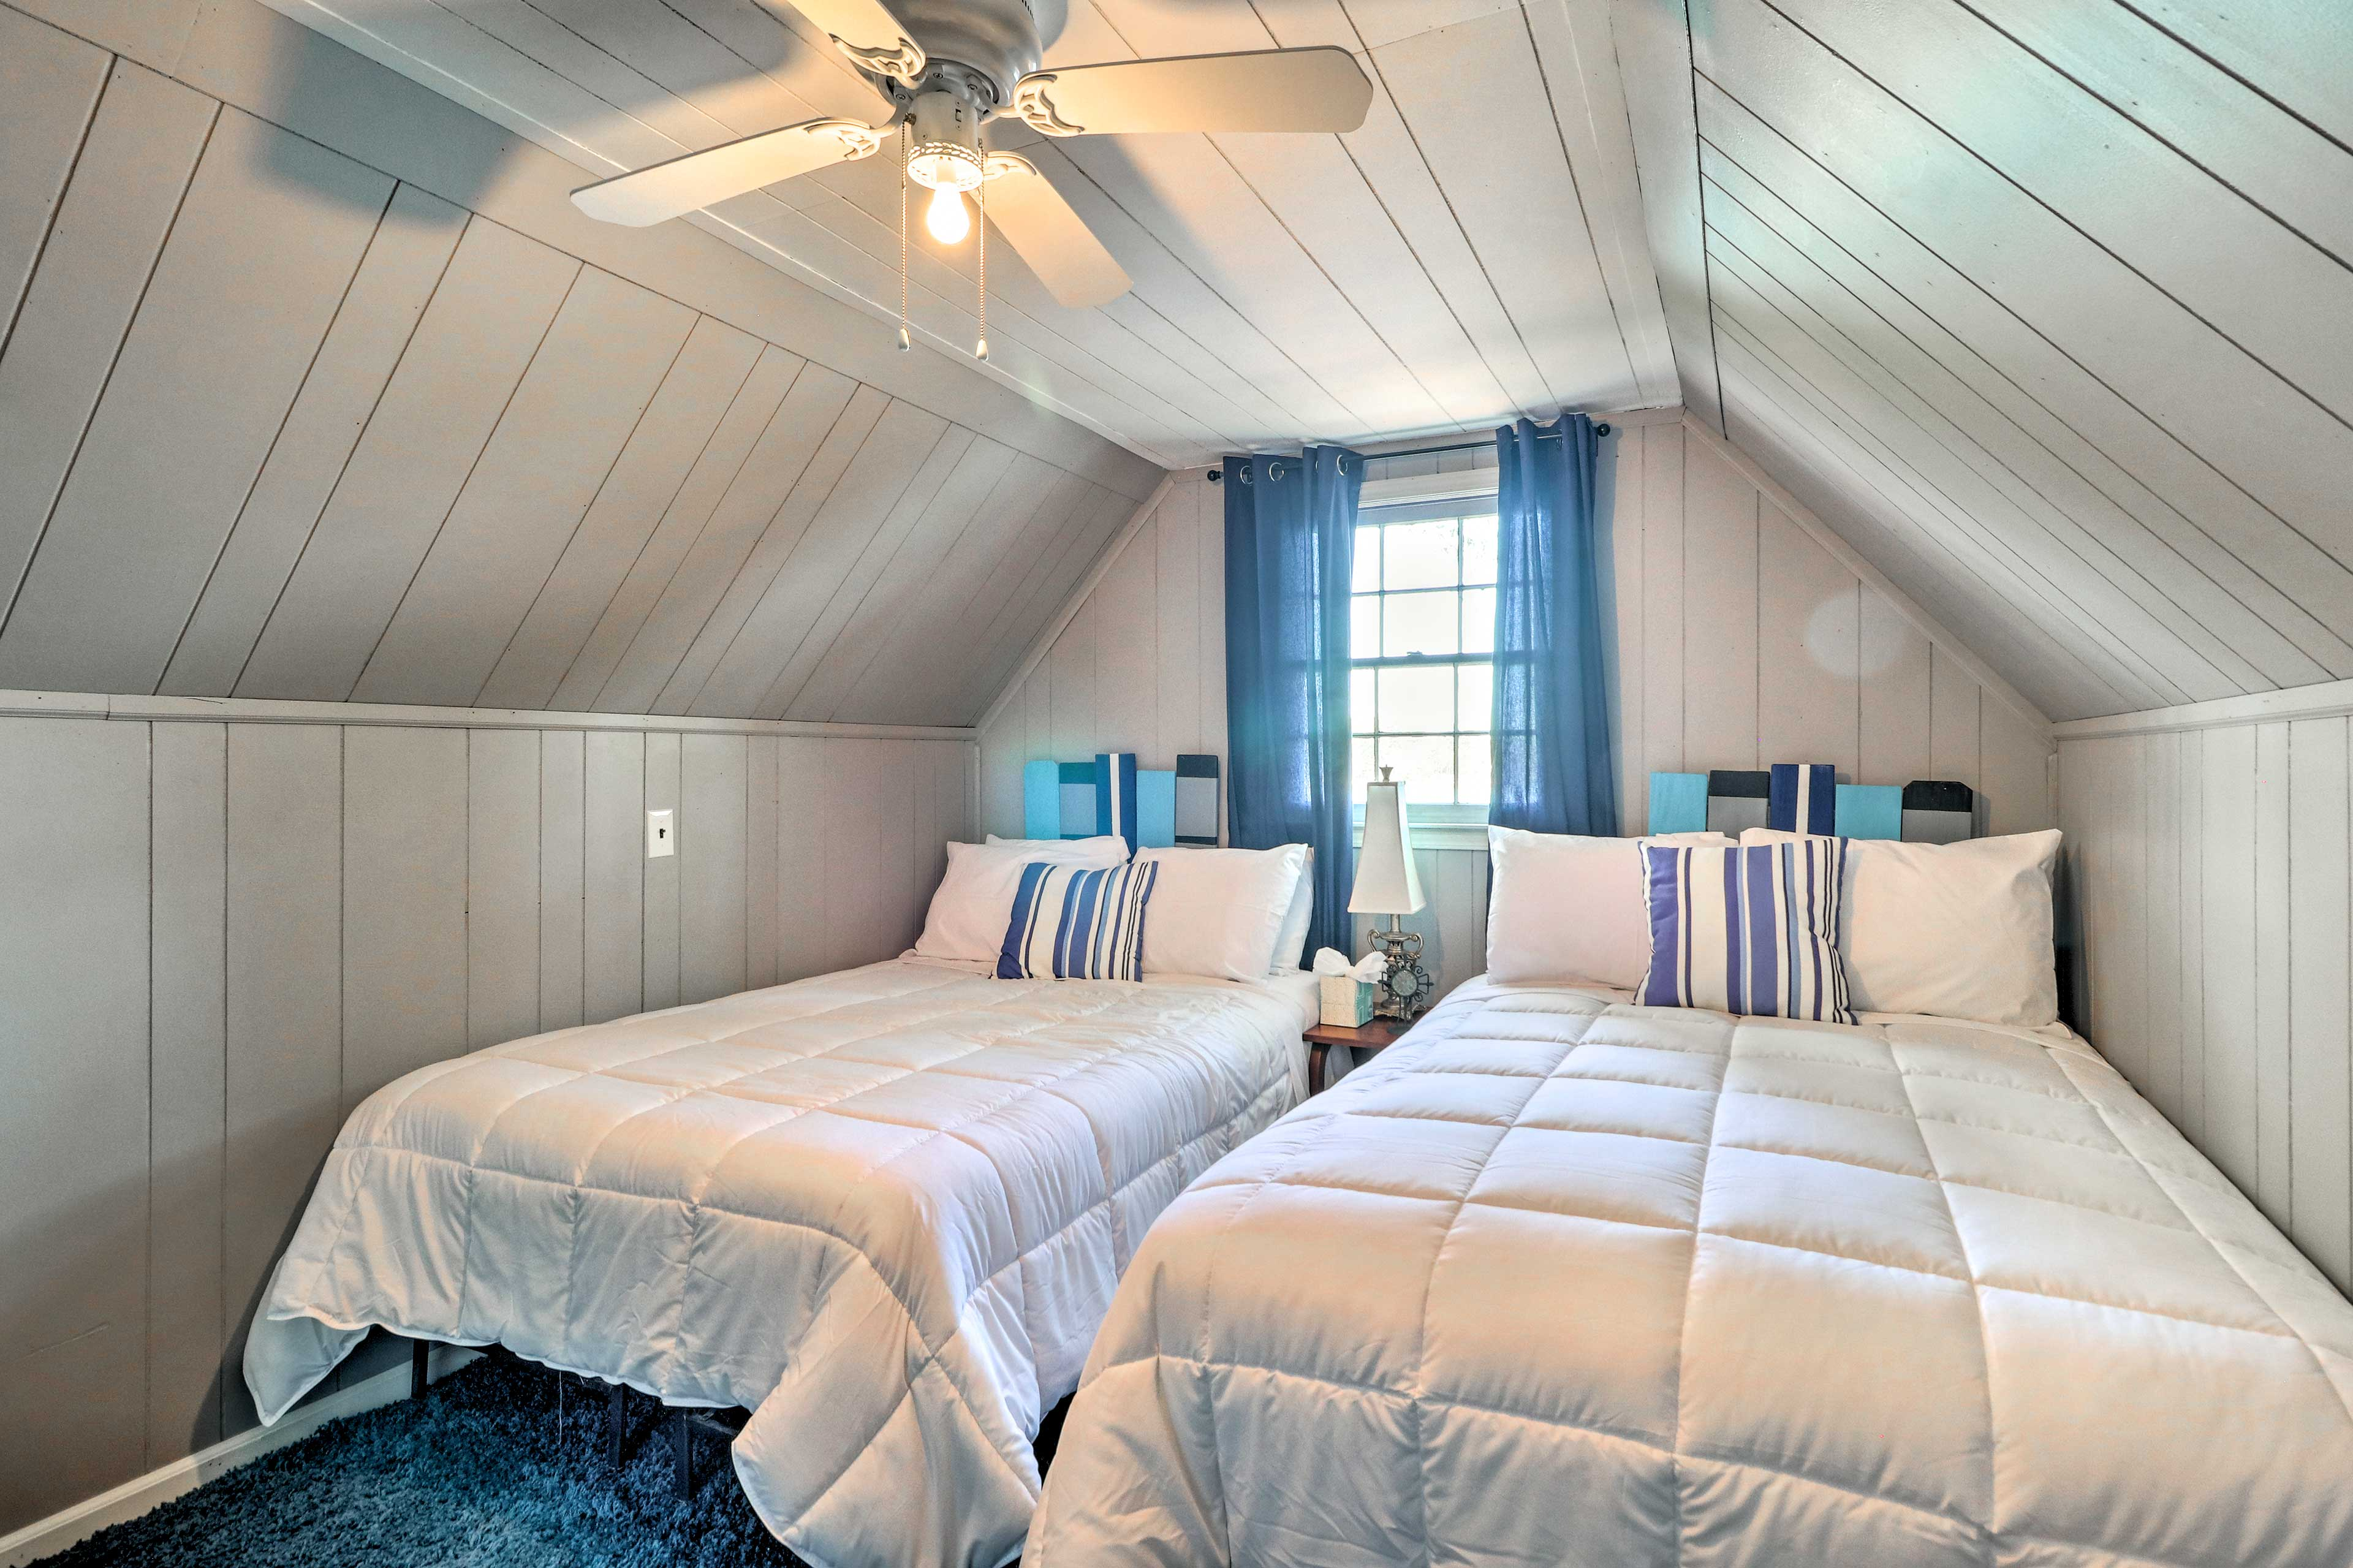 This bedroom calls for a sleepover with 2 full beds.